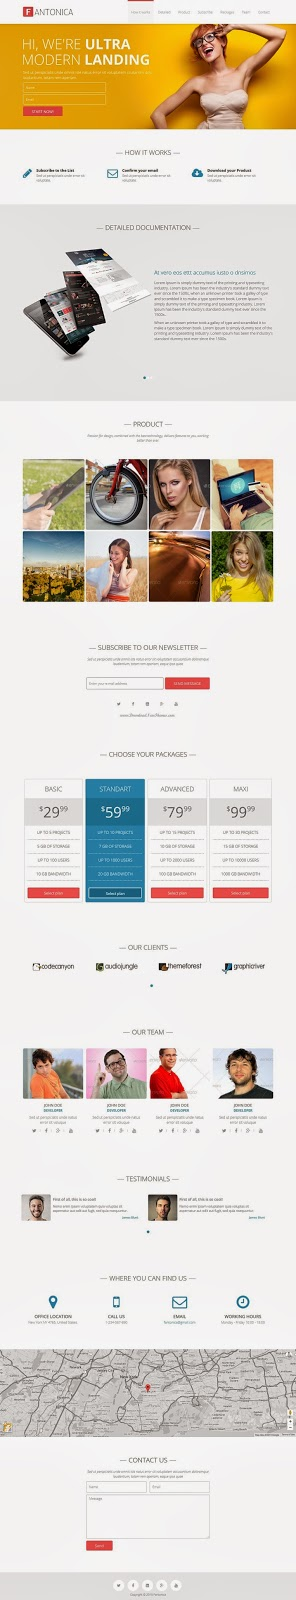 Responsive Bootstrap Landing Page Template